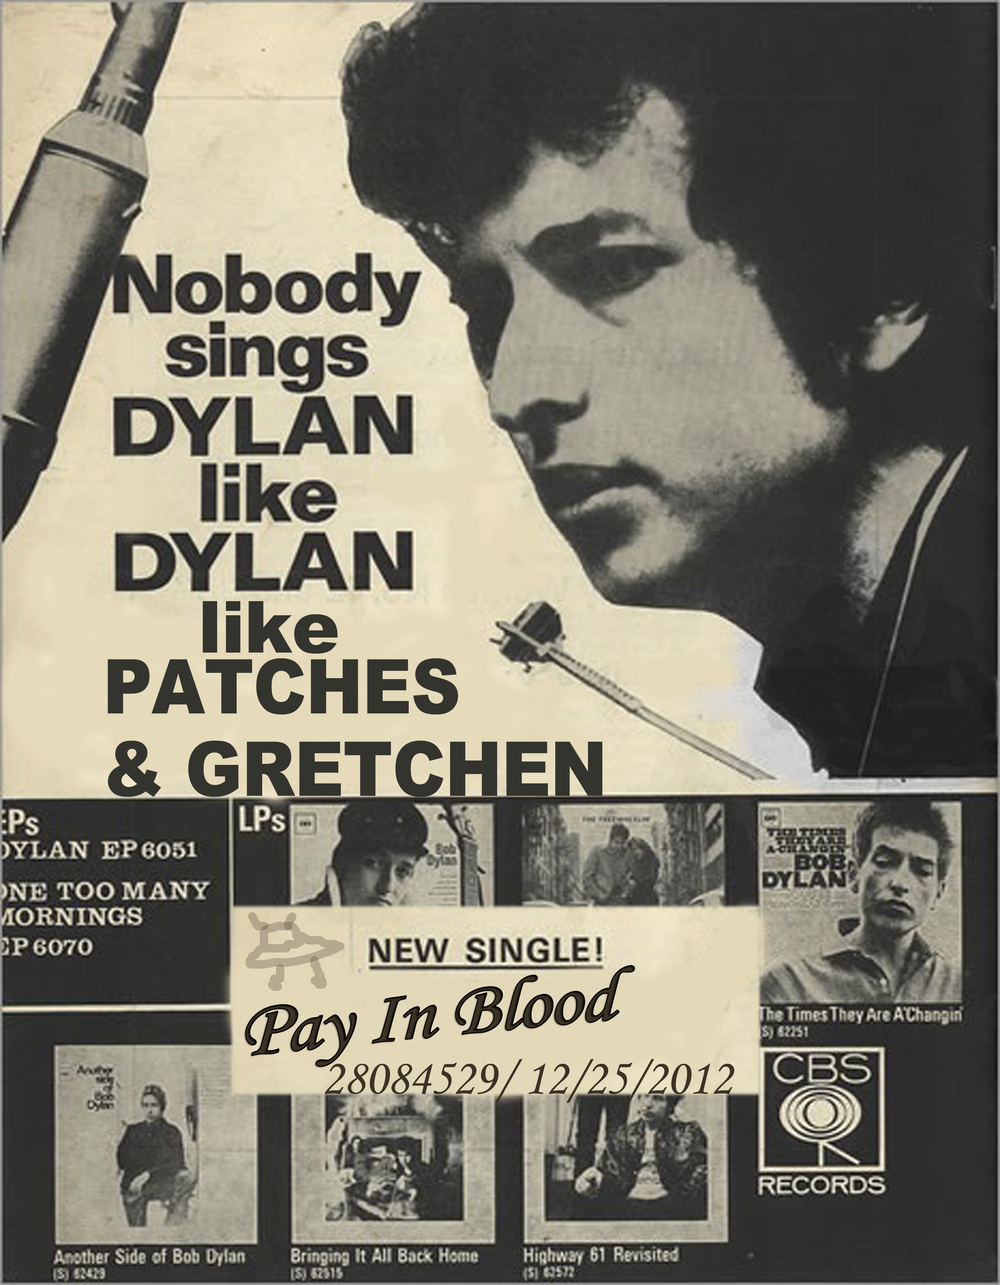 PATCHES & GRETCHEN NEW SINGLE! BOB DYLAN Pay In Blood 12/25/2012 Poster by Gretchen Seichrist